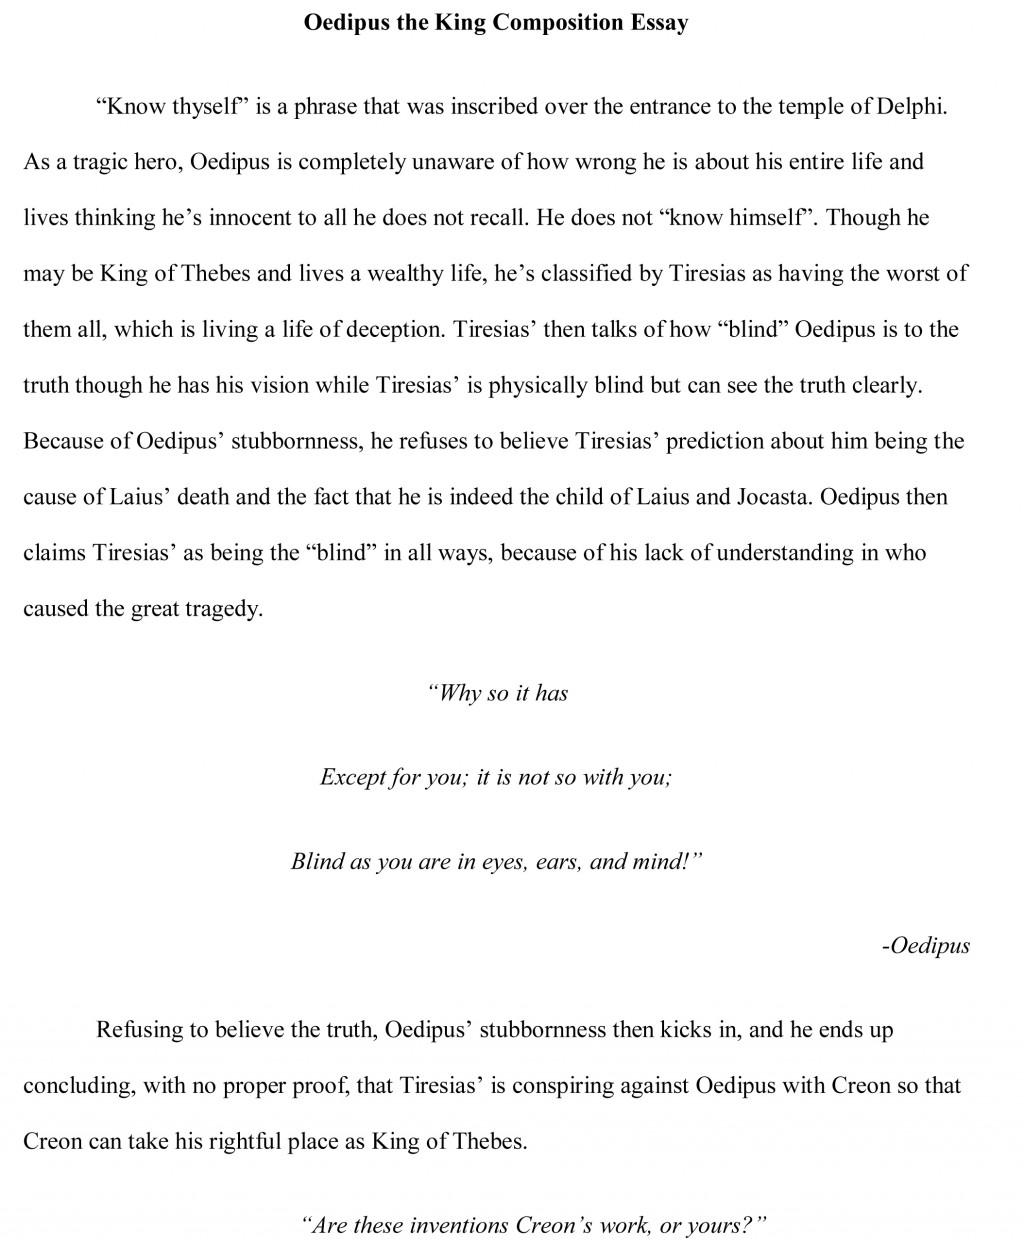 017 Good Research Essay Topics Oedipus Free Sample Awesome Paper For College Students Interesting History Large